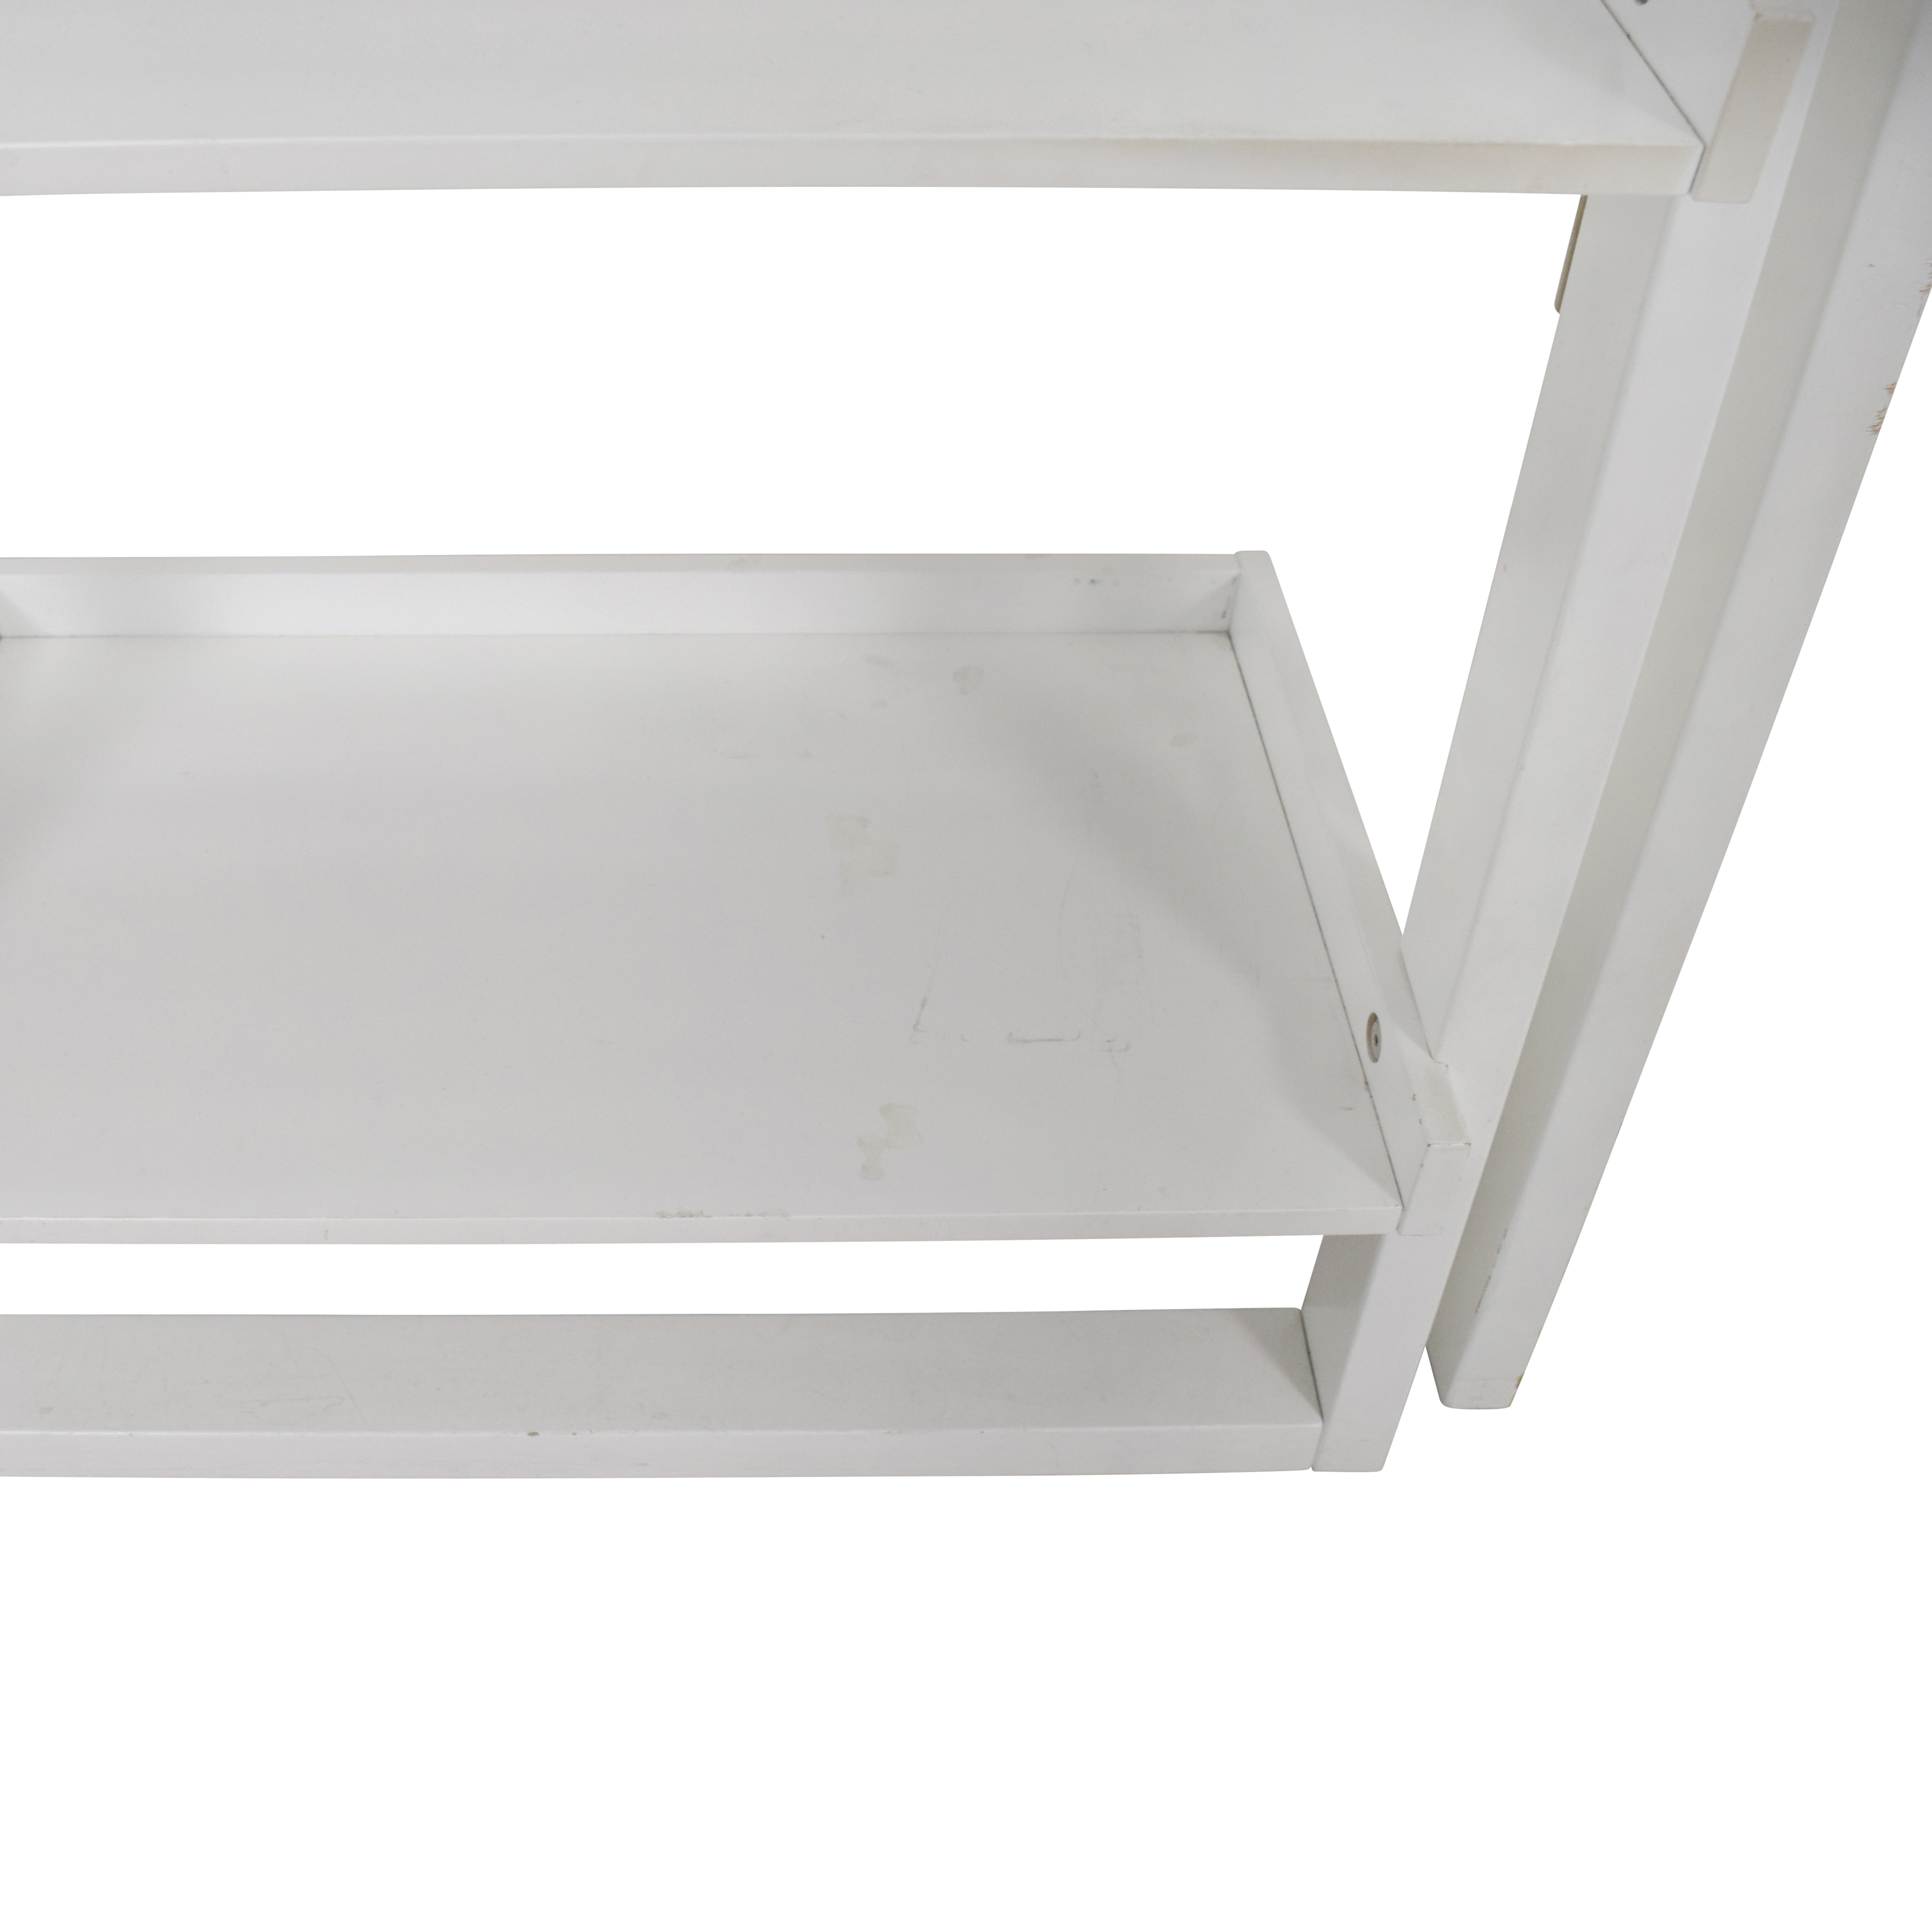 Crate & Barrel Crate & Barrel Leaning White Bookshelf second hand